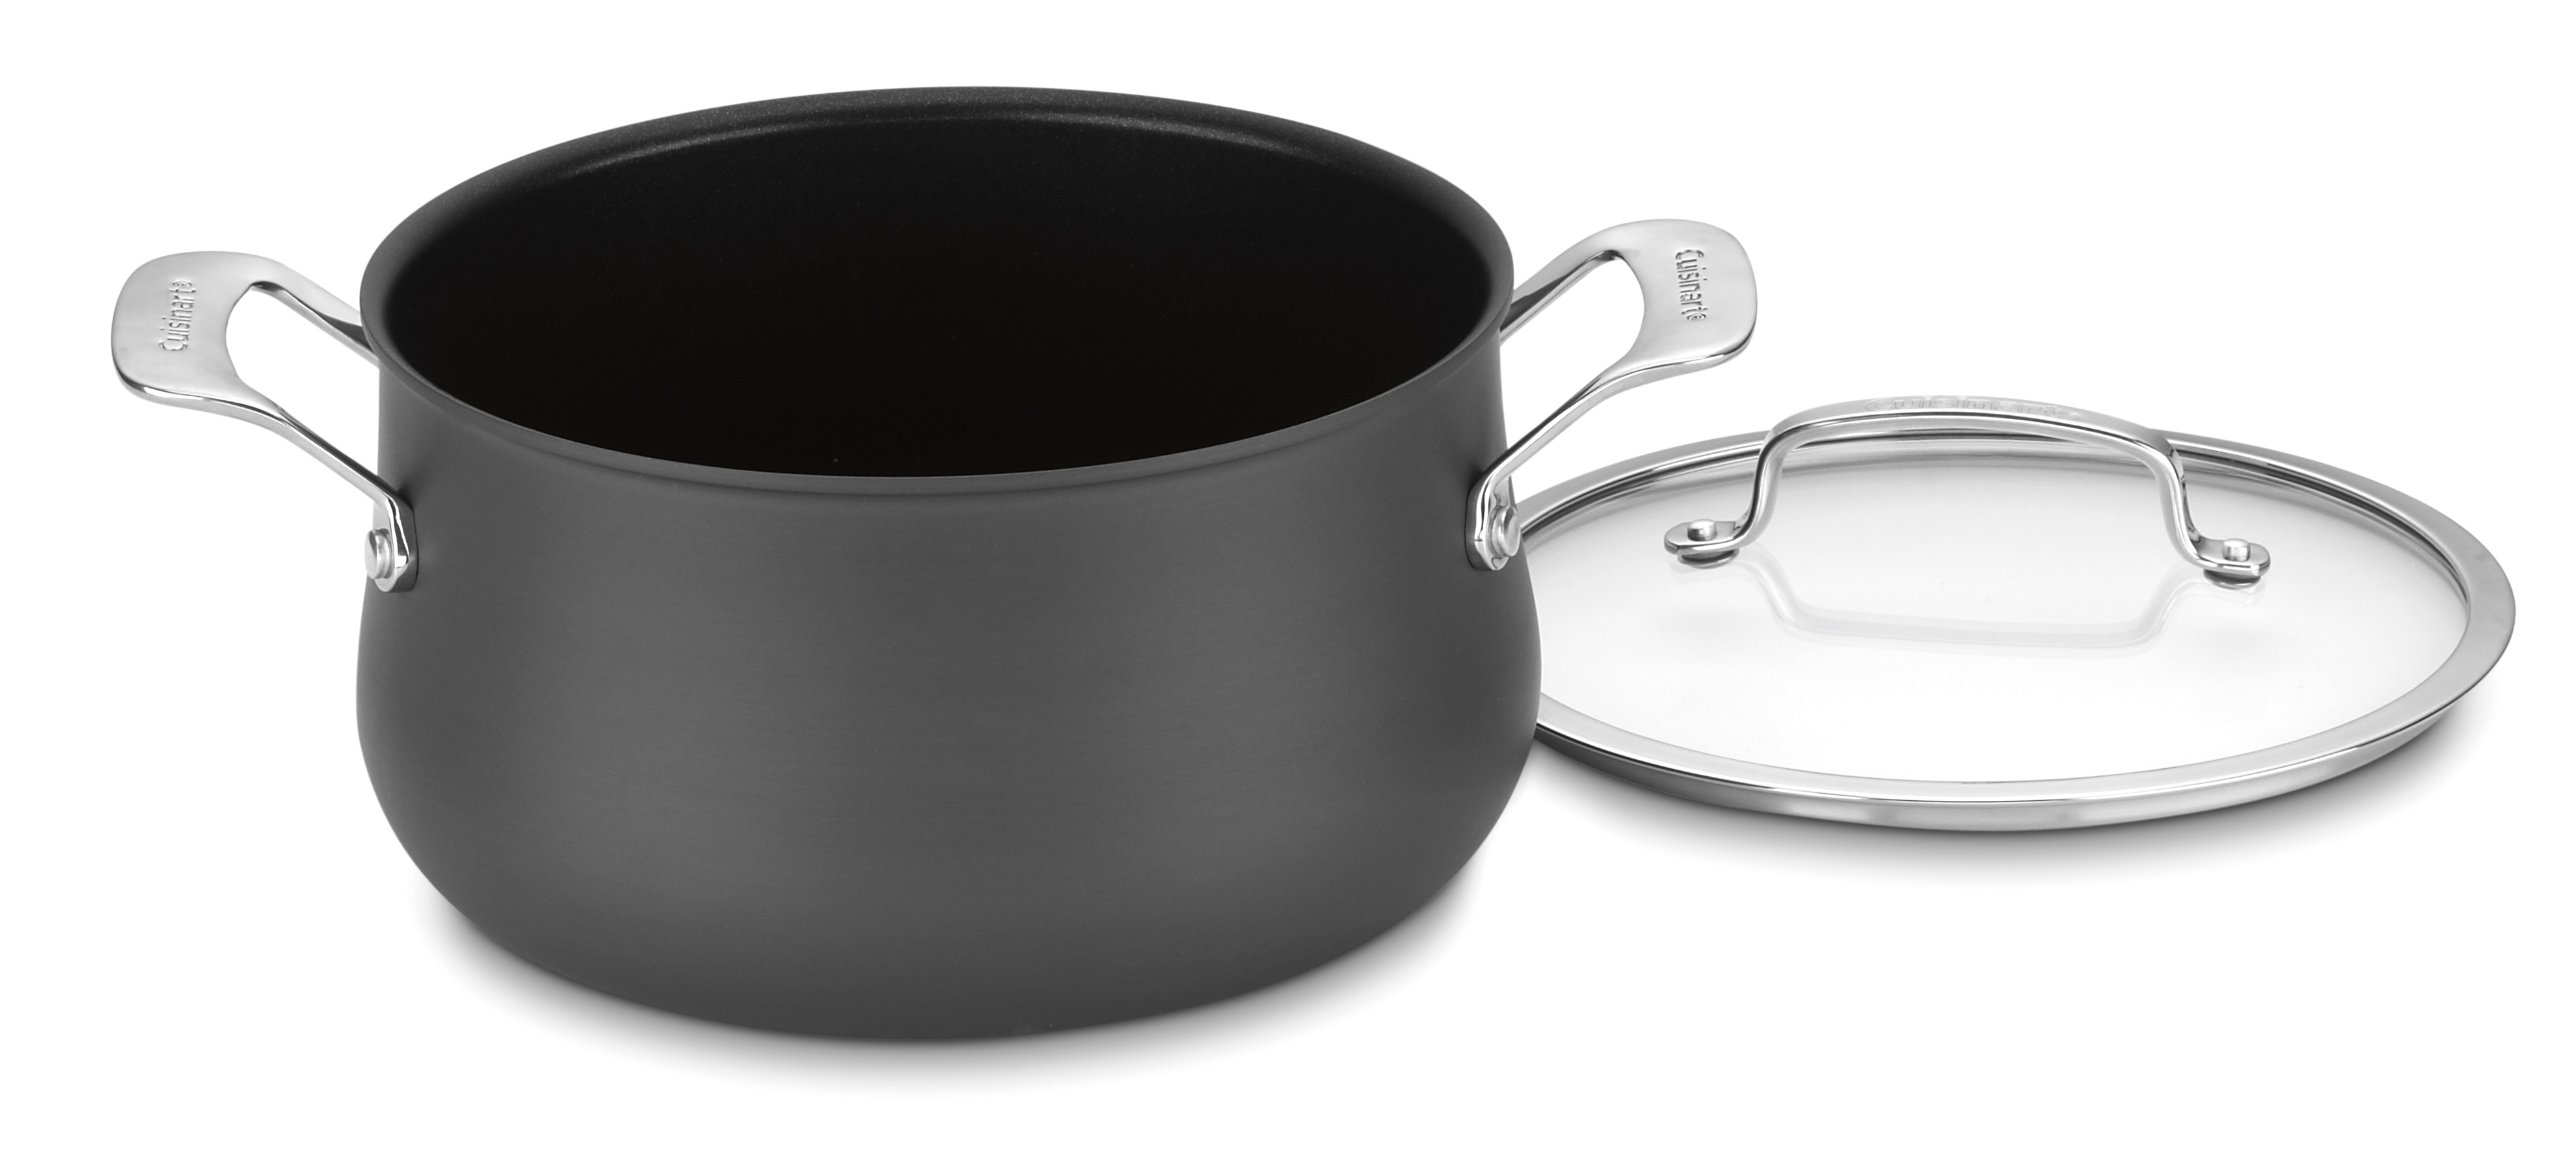 Cuisinart 6445-22 Contour Hard Anodized 5-Quart Dutch Oven with Cover by Cuisinart